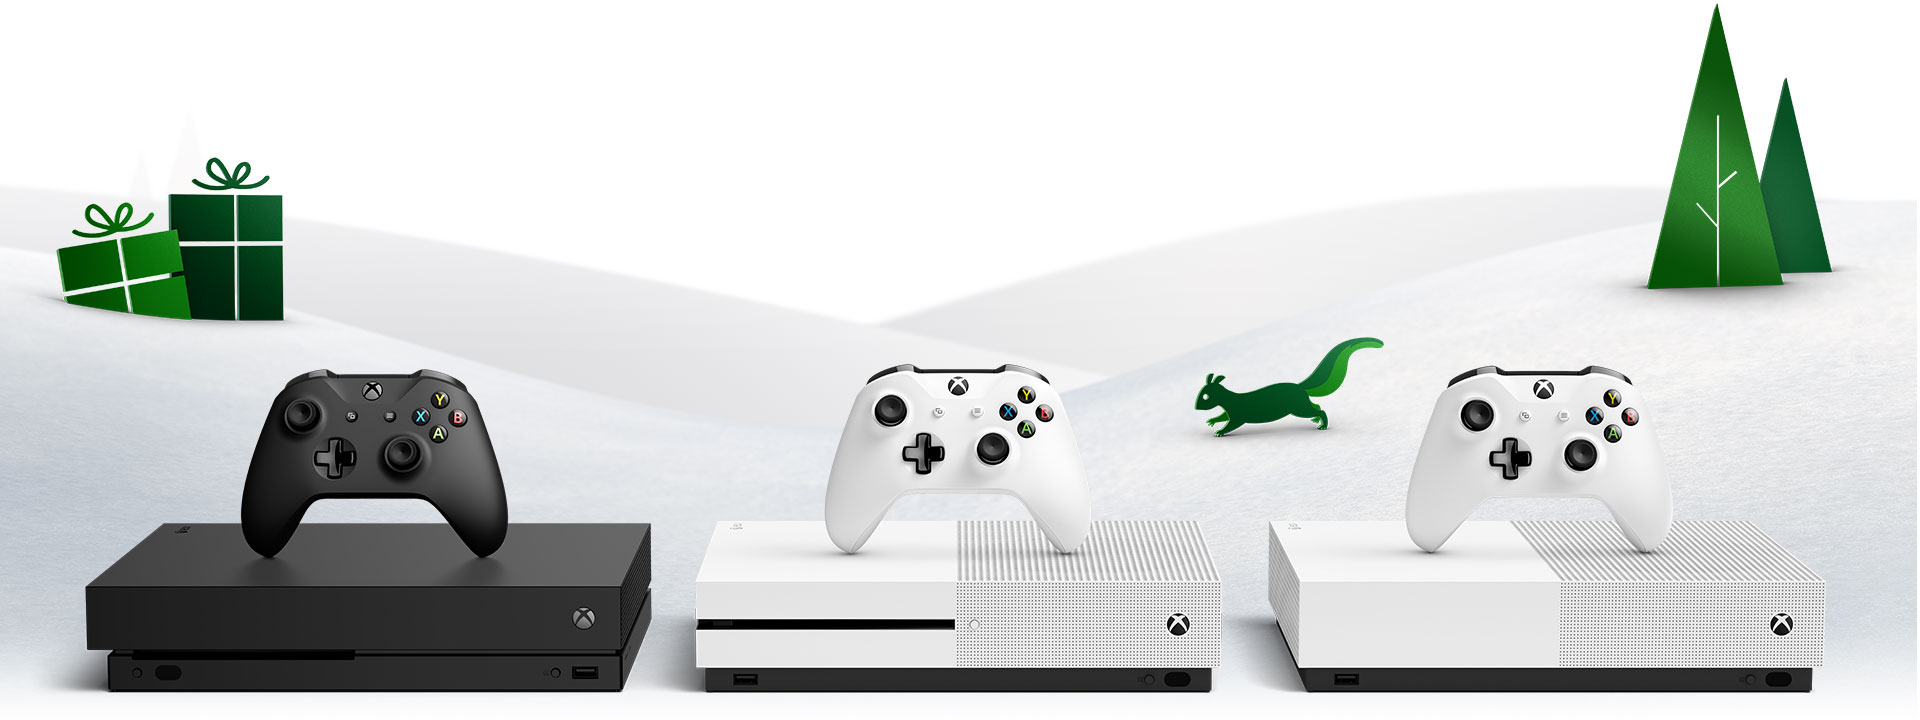 Xbox One X, Xbox One S, and Xbox One S-All-Digital Edition in front of a snowy backrgound with trees and animals